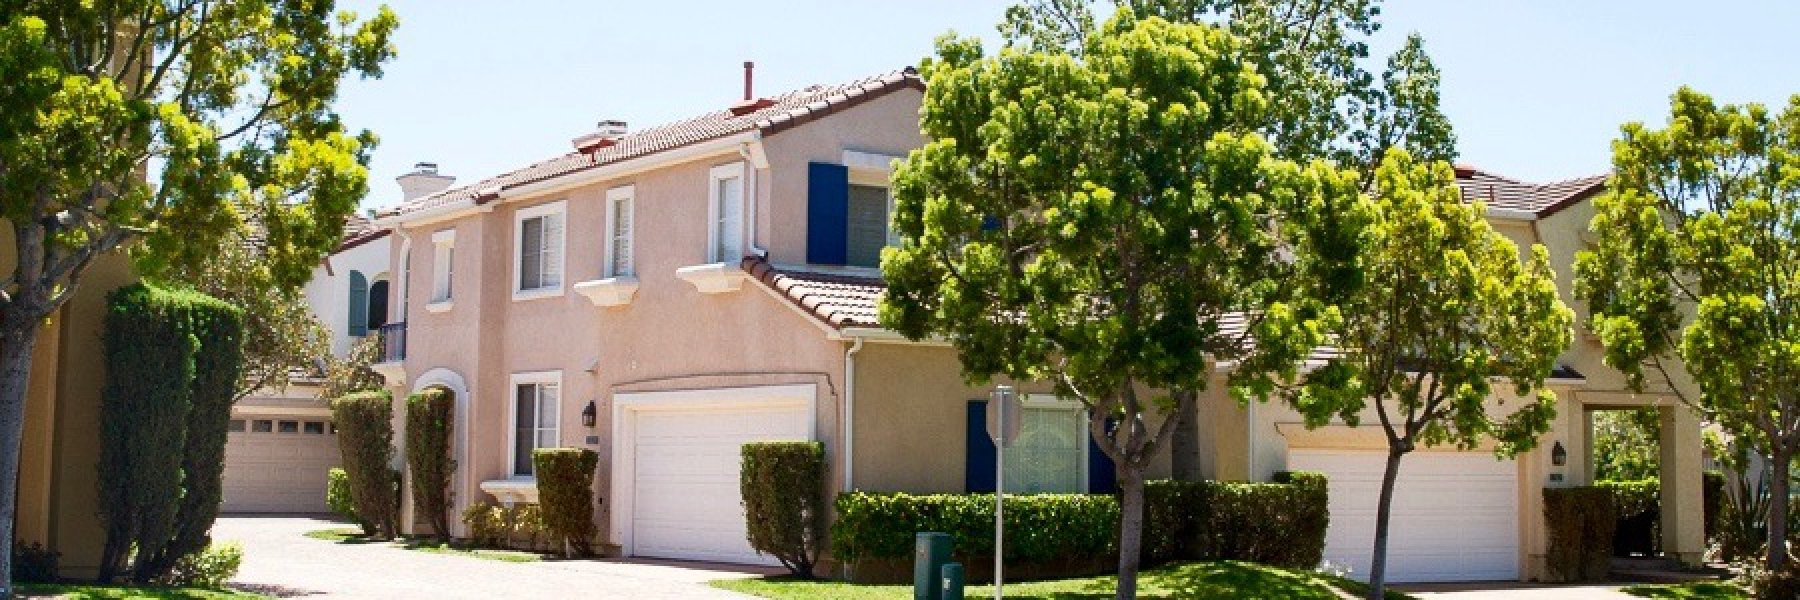 Trilogy is a community of homes in San Diego California